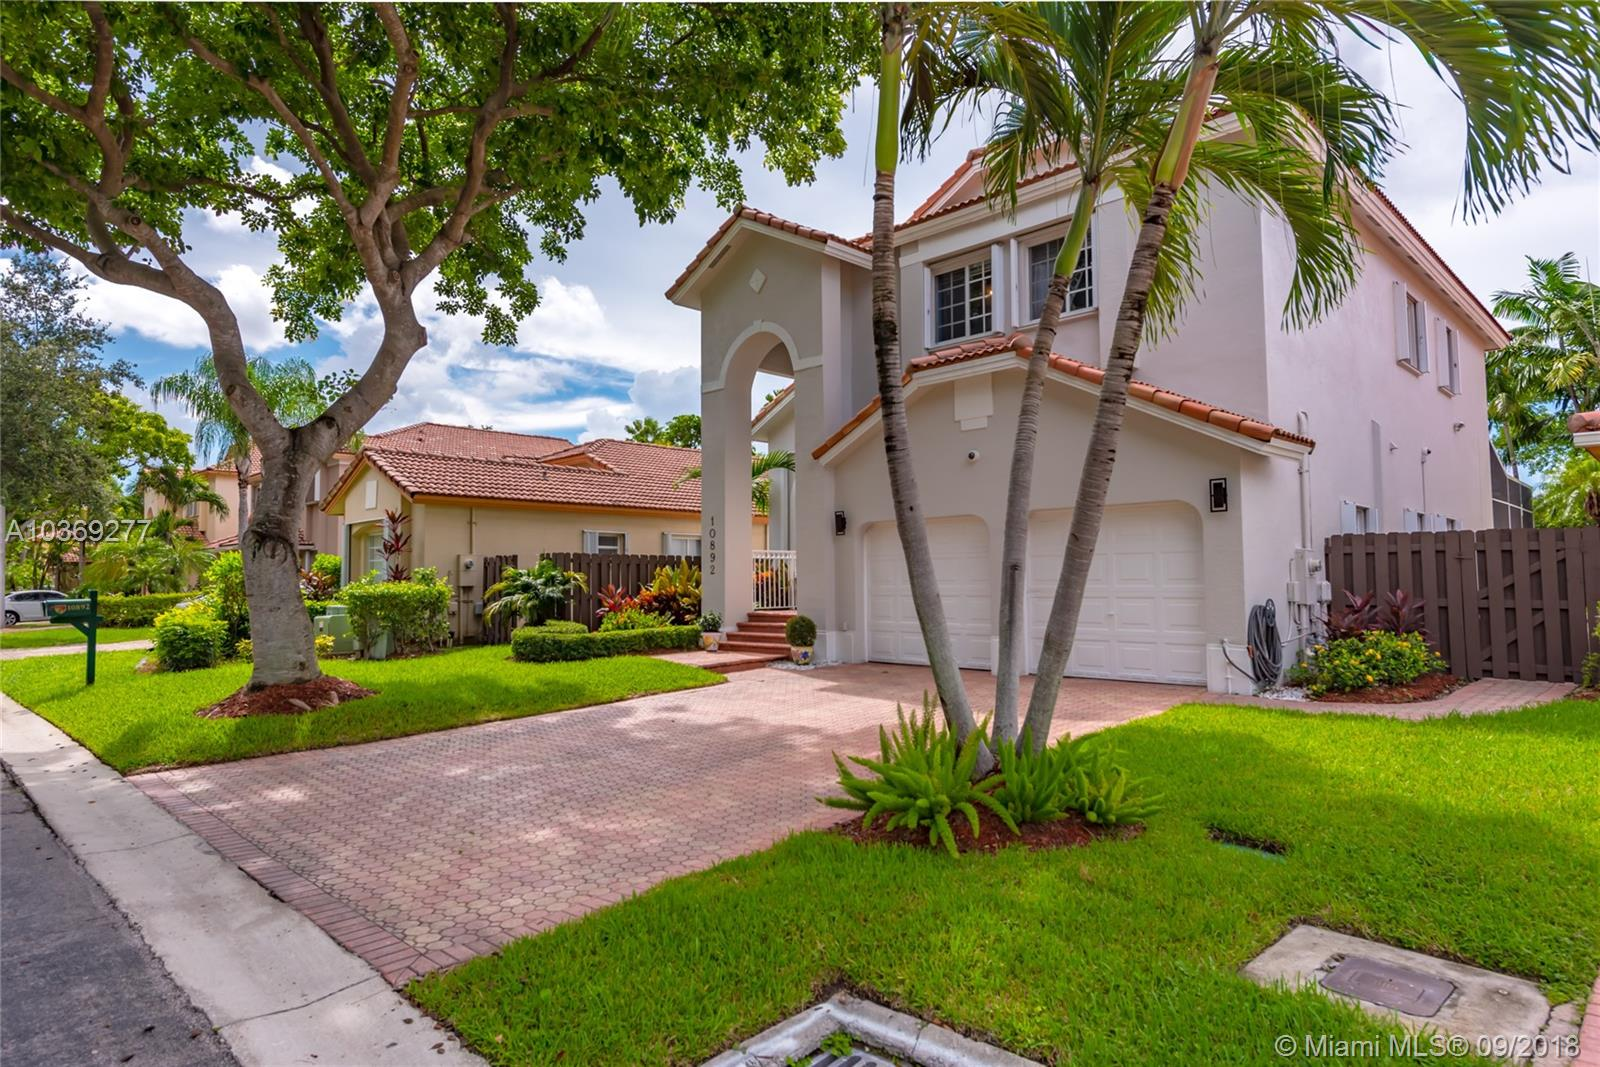 10892 Nw 58th Ter, Doral FL, 33178